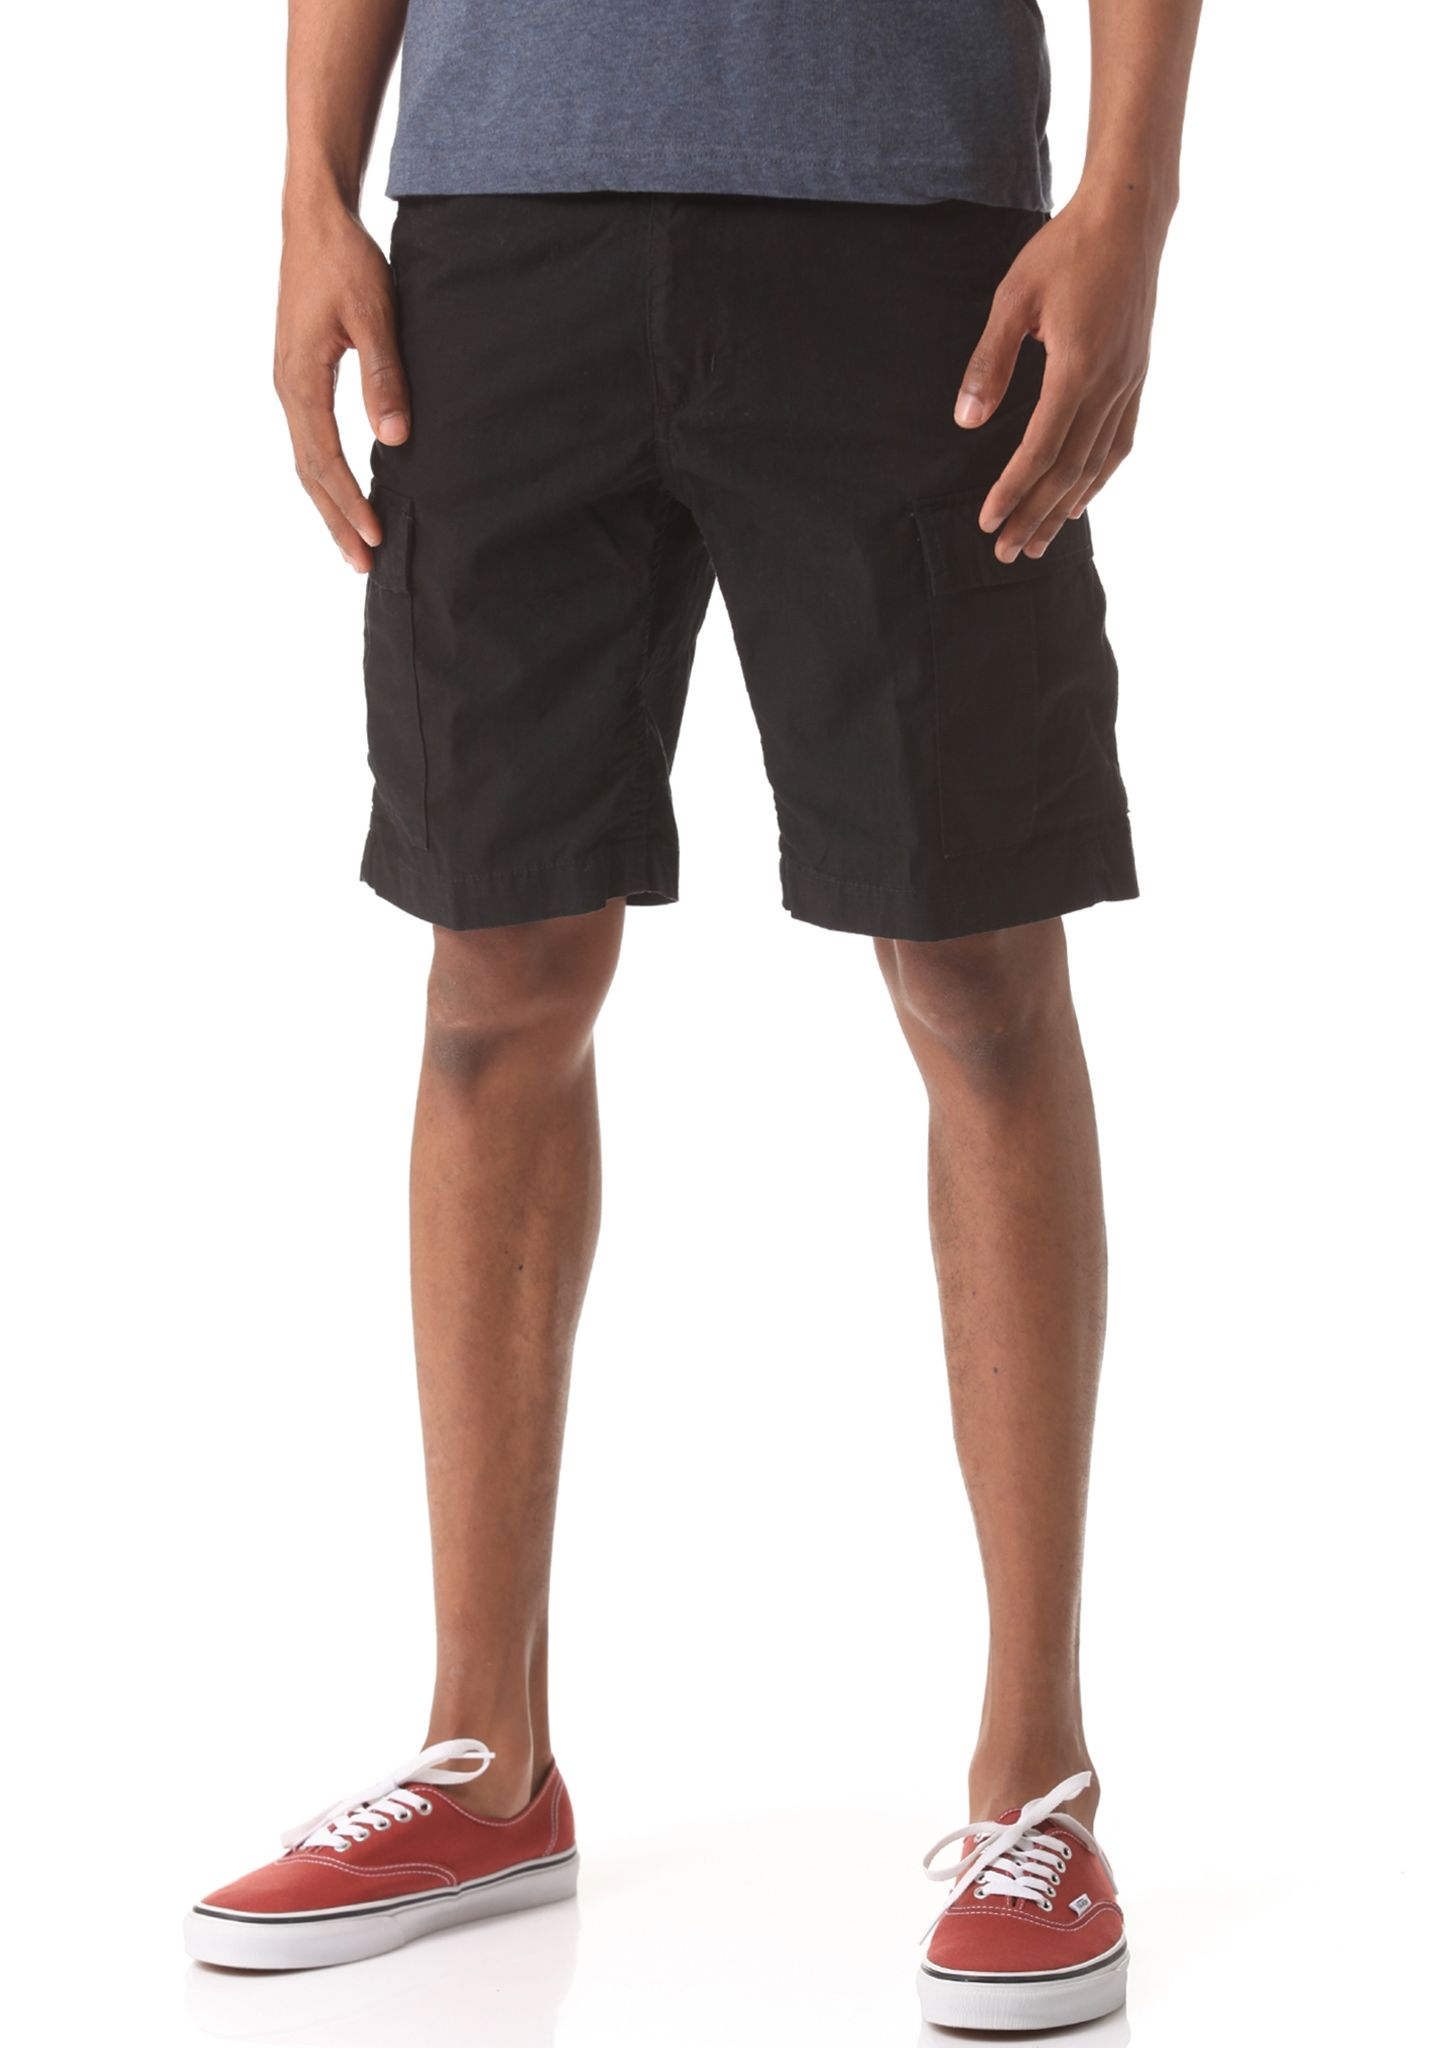 a62d6a4dca carhartt WIP Aviation Bermuda Cotton Columbia Ripstop - Cargo Shorts for Men  - Black - Planet Sports